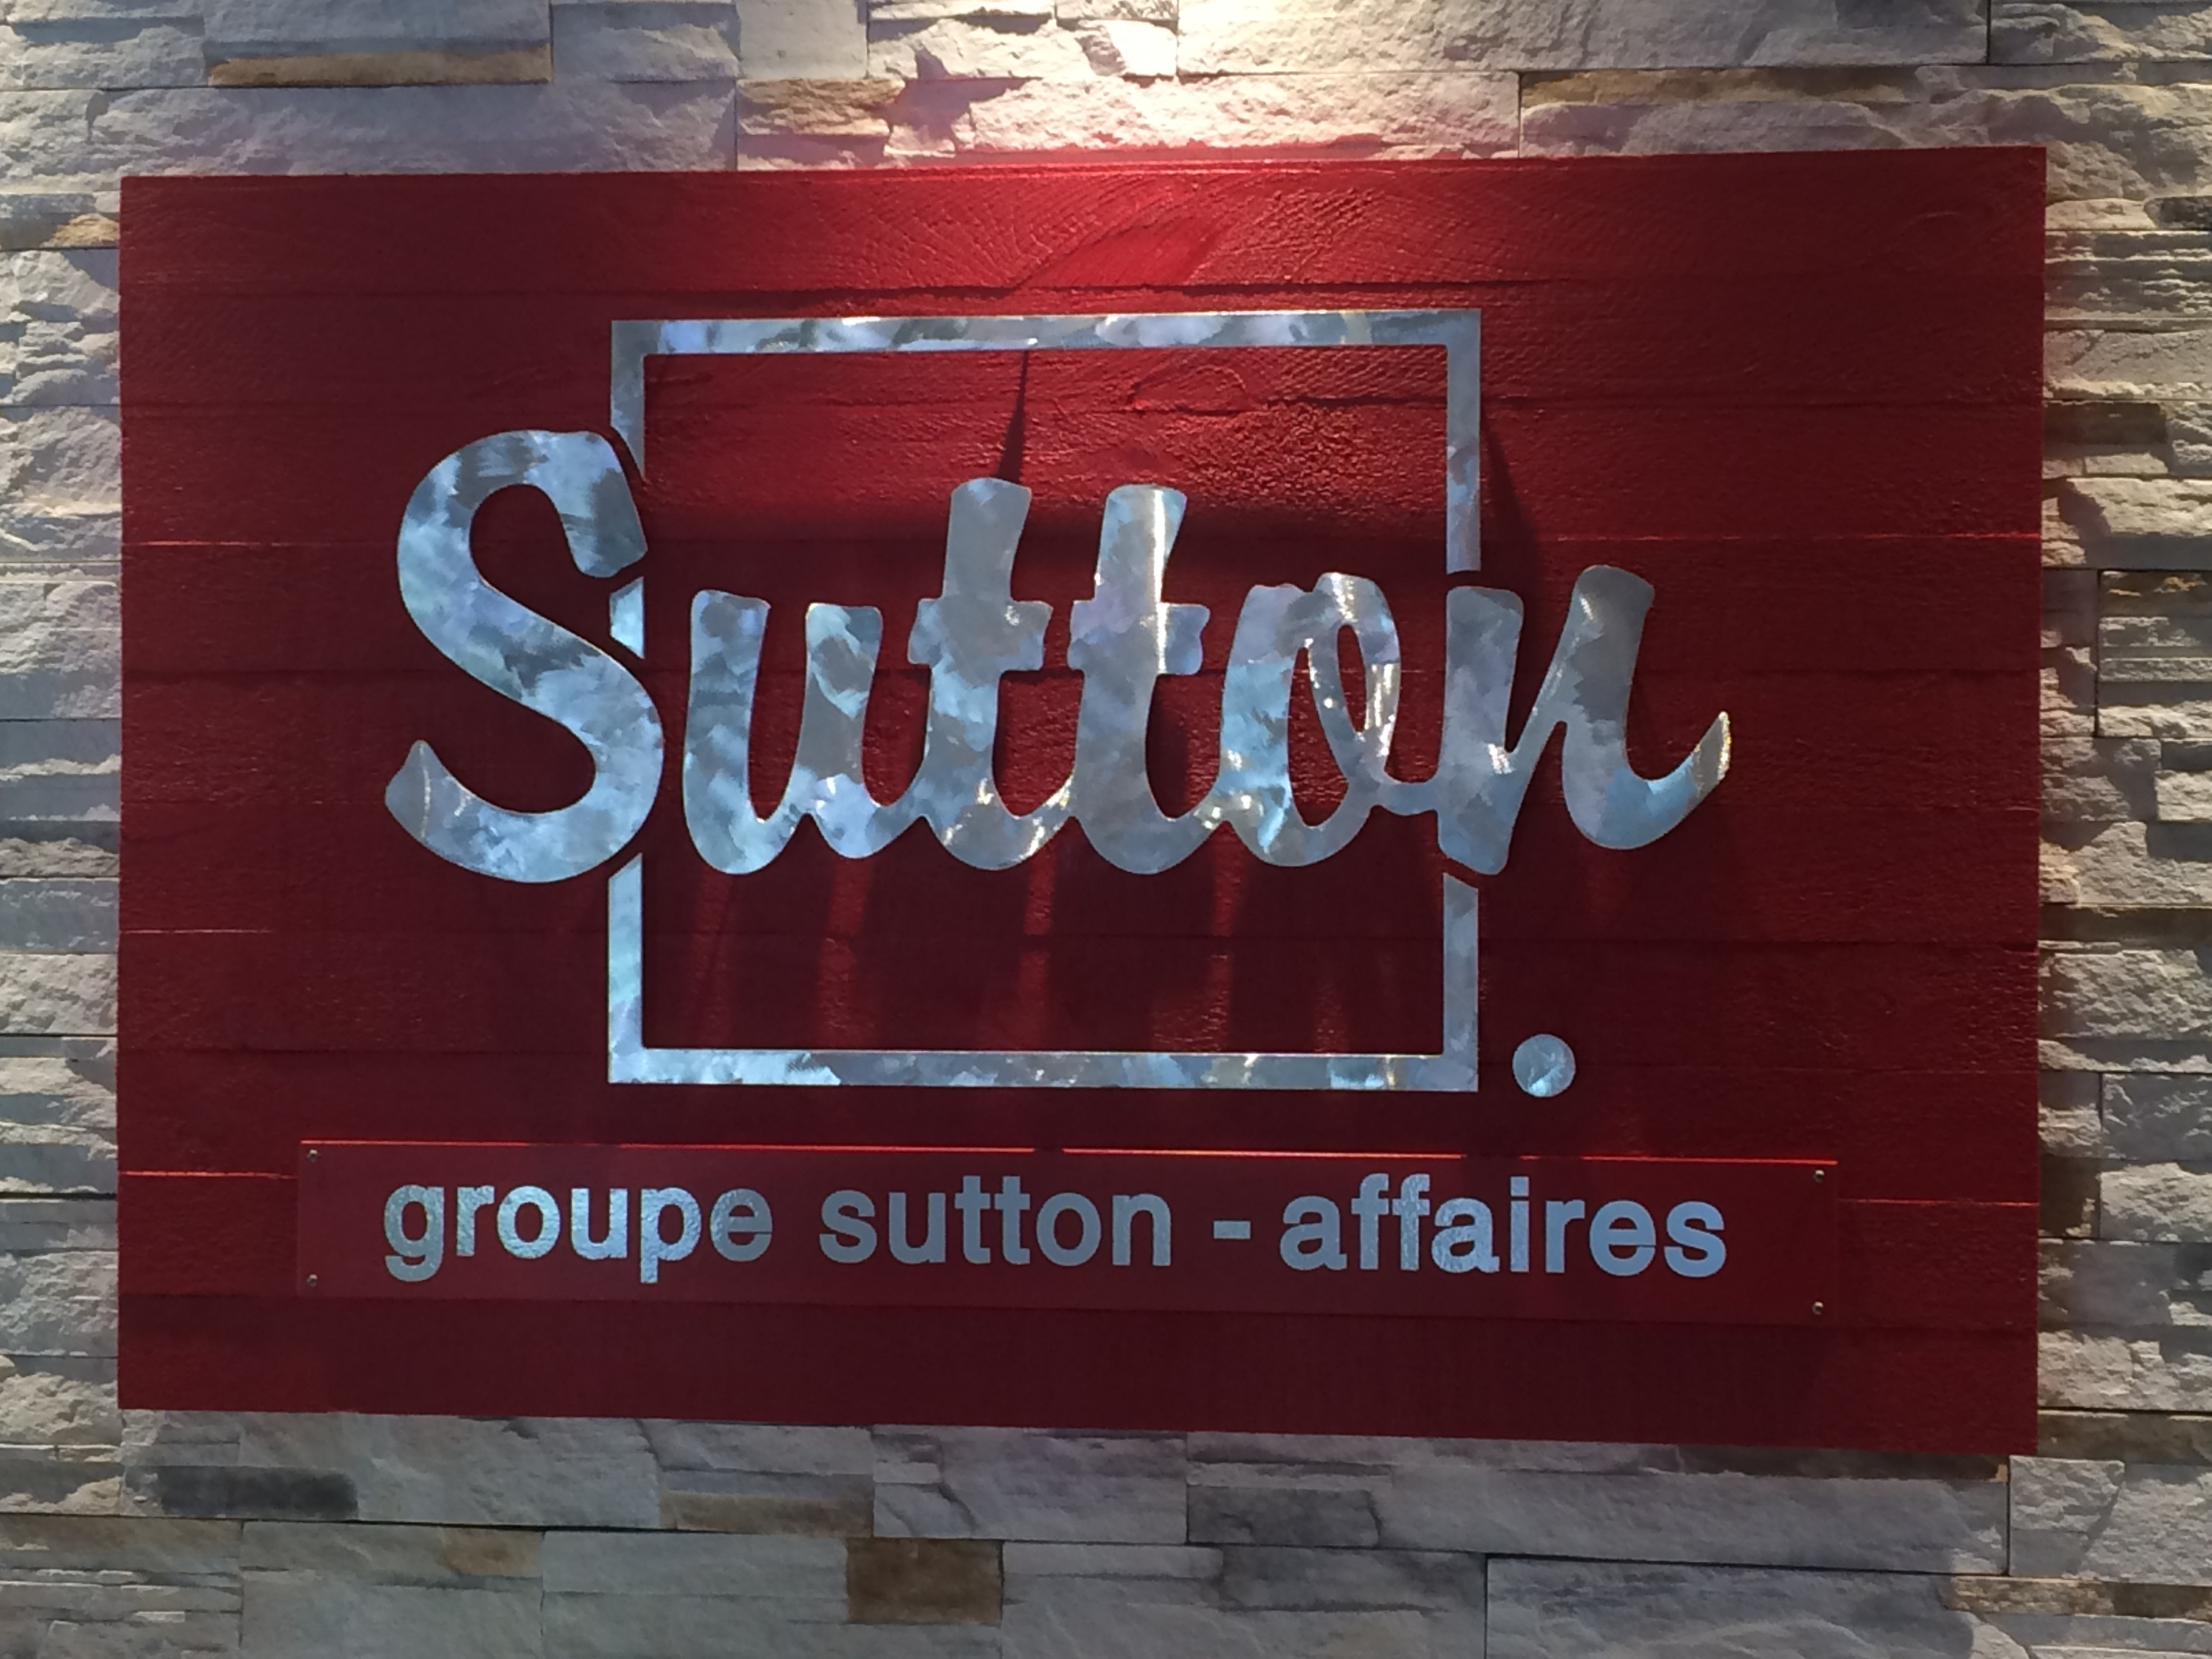 groupe sutton - affaires